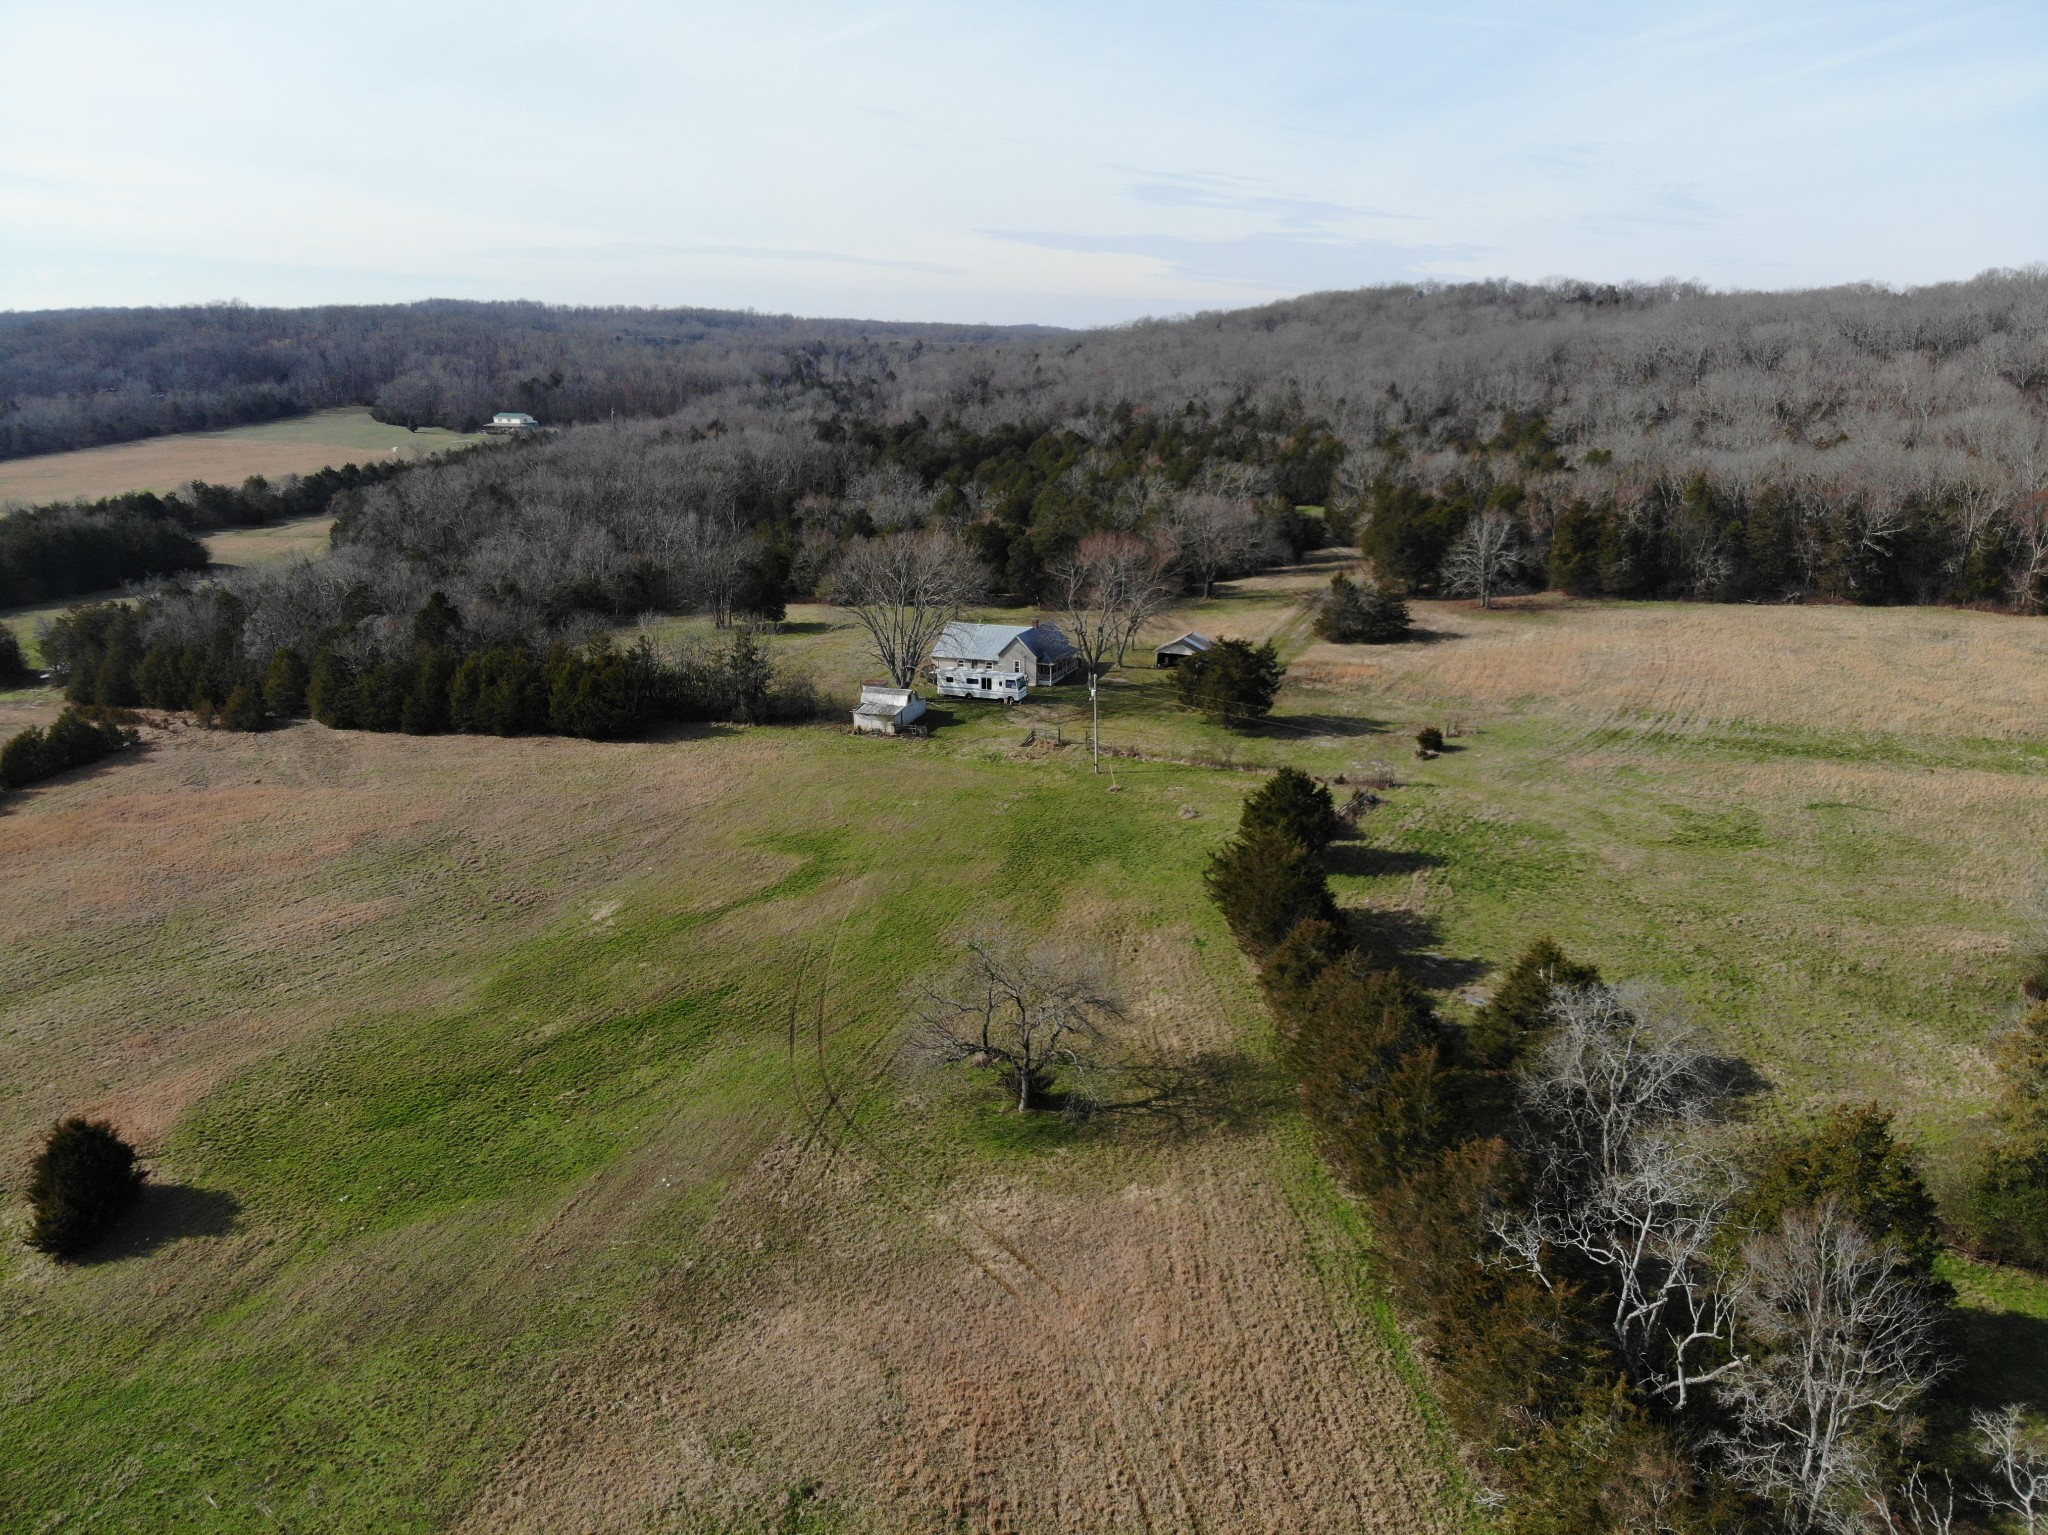 3557 Snail Shell Cave Rd, Rockvale, TN 37153 - Rockvale, TN real estate listing